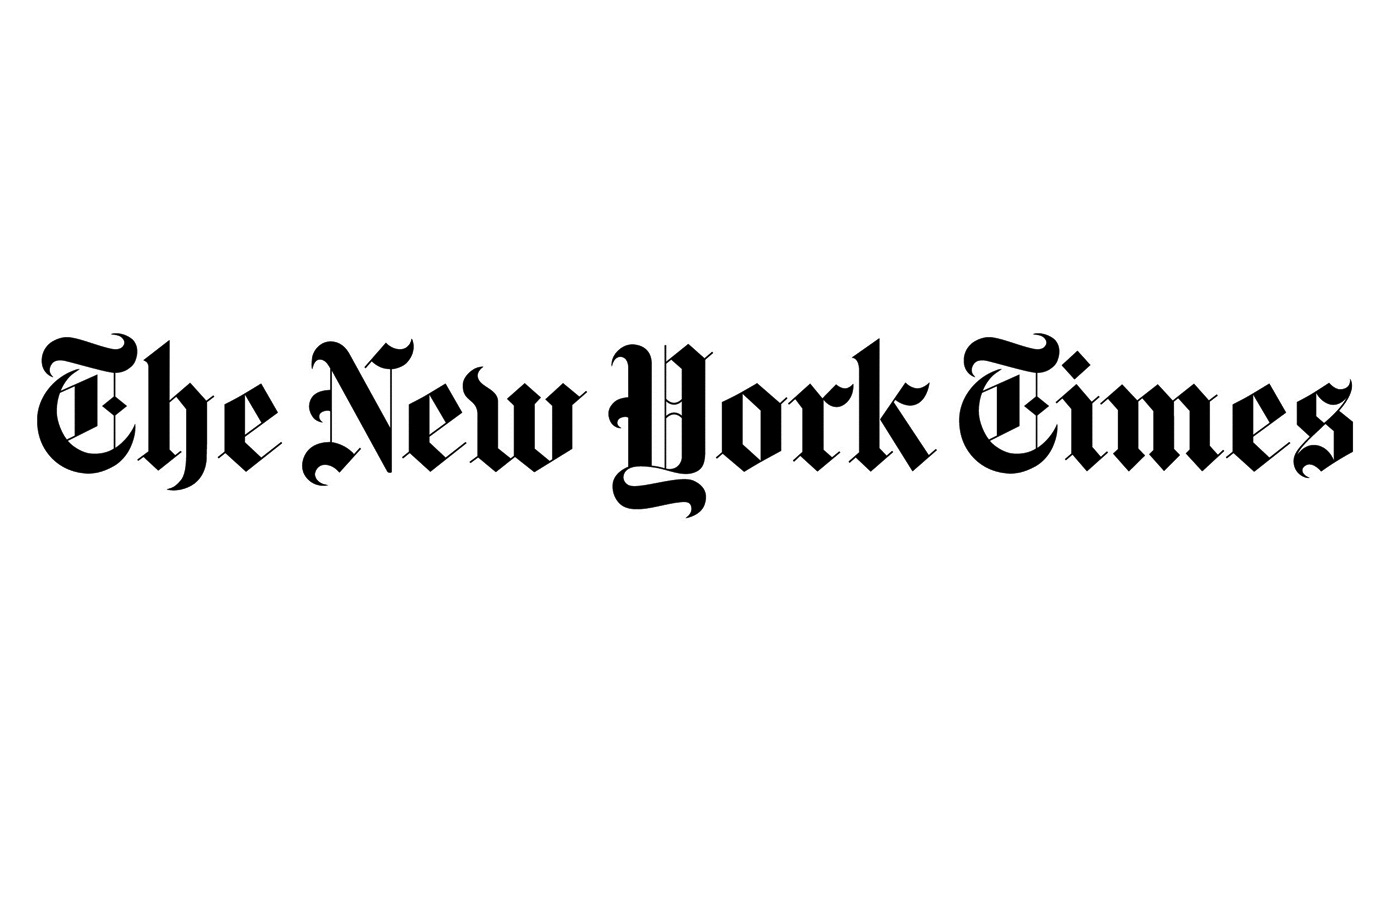 new-york-times-logo-8 - ADHD Roller Coaster with Gina Pera